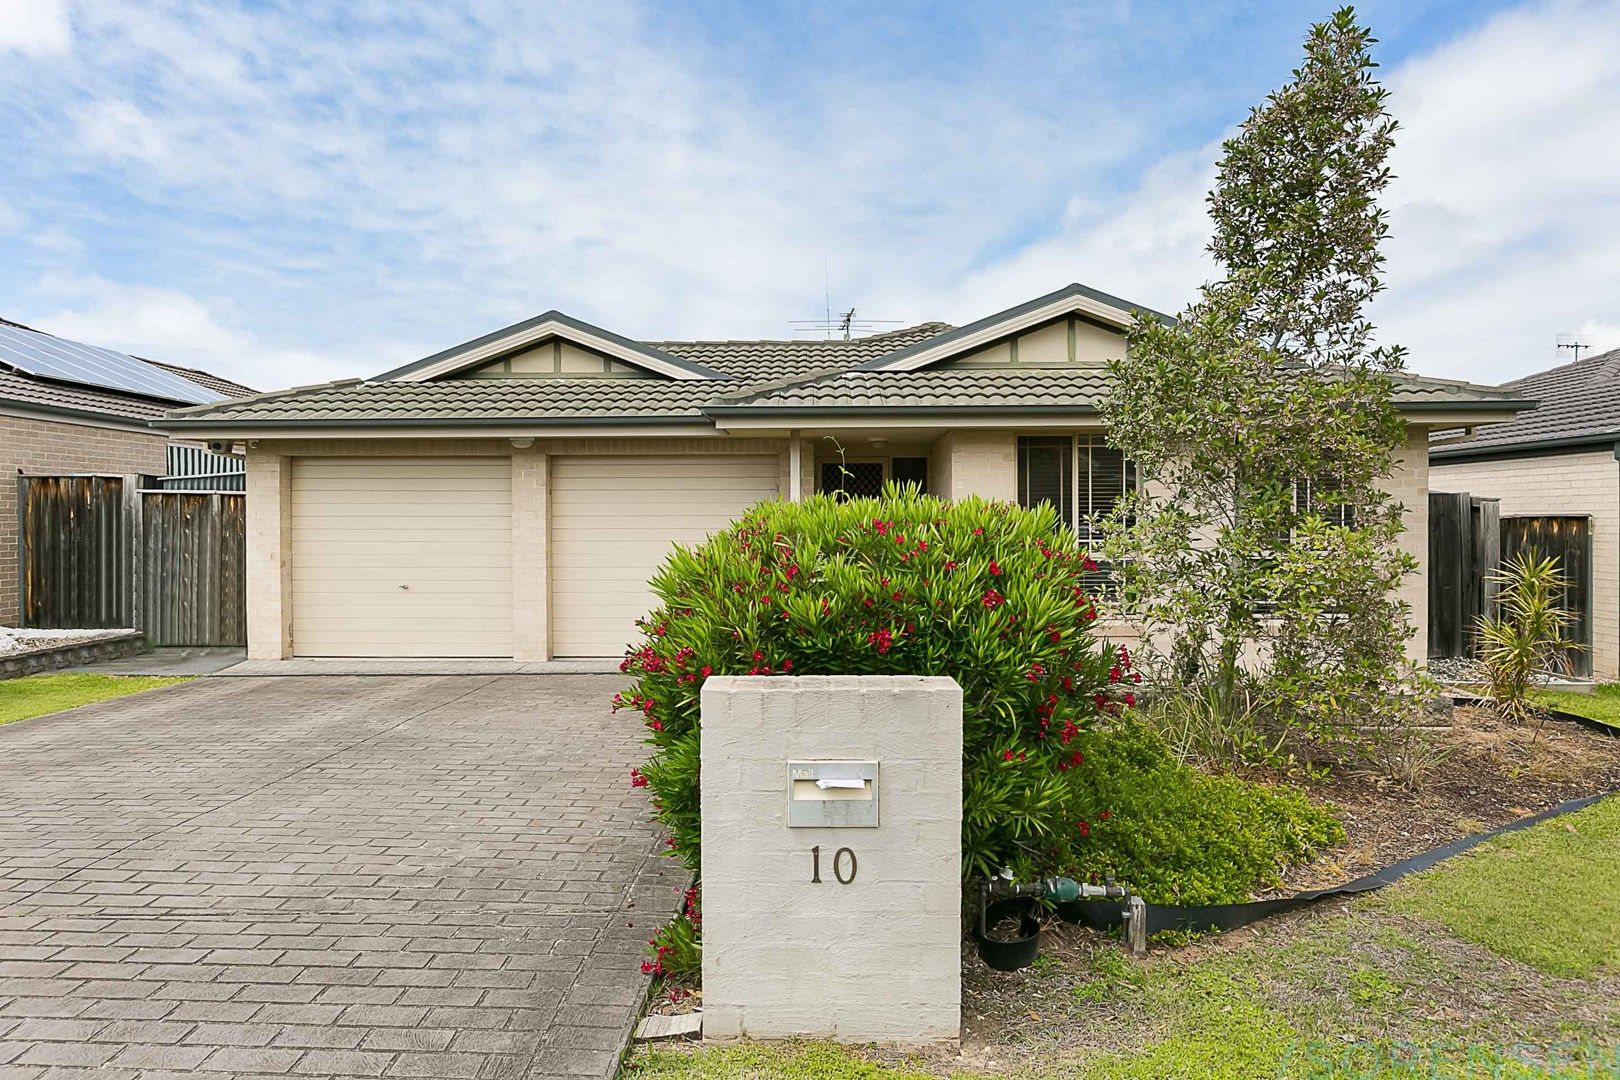 10 Dunlop Road, Blue Haven NSW 2262, Image 0